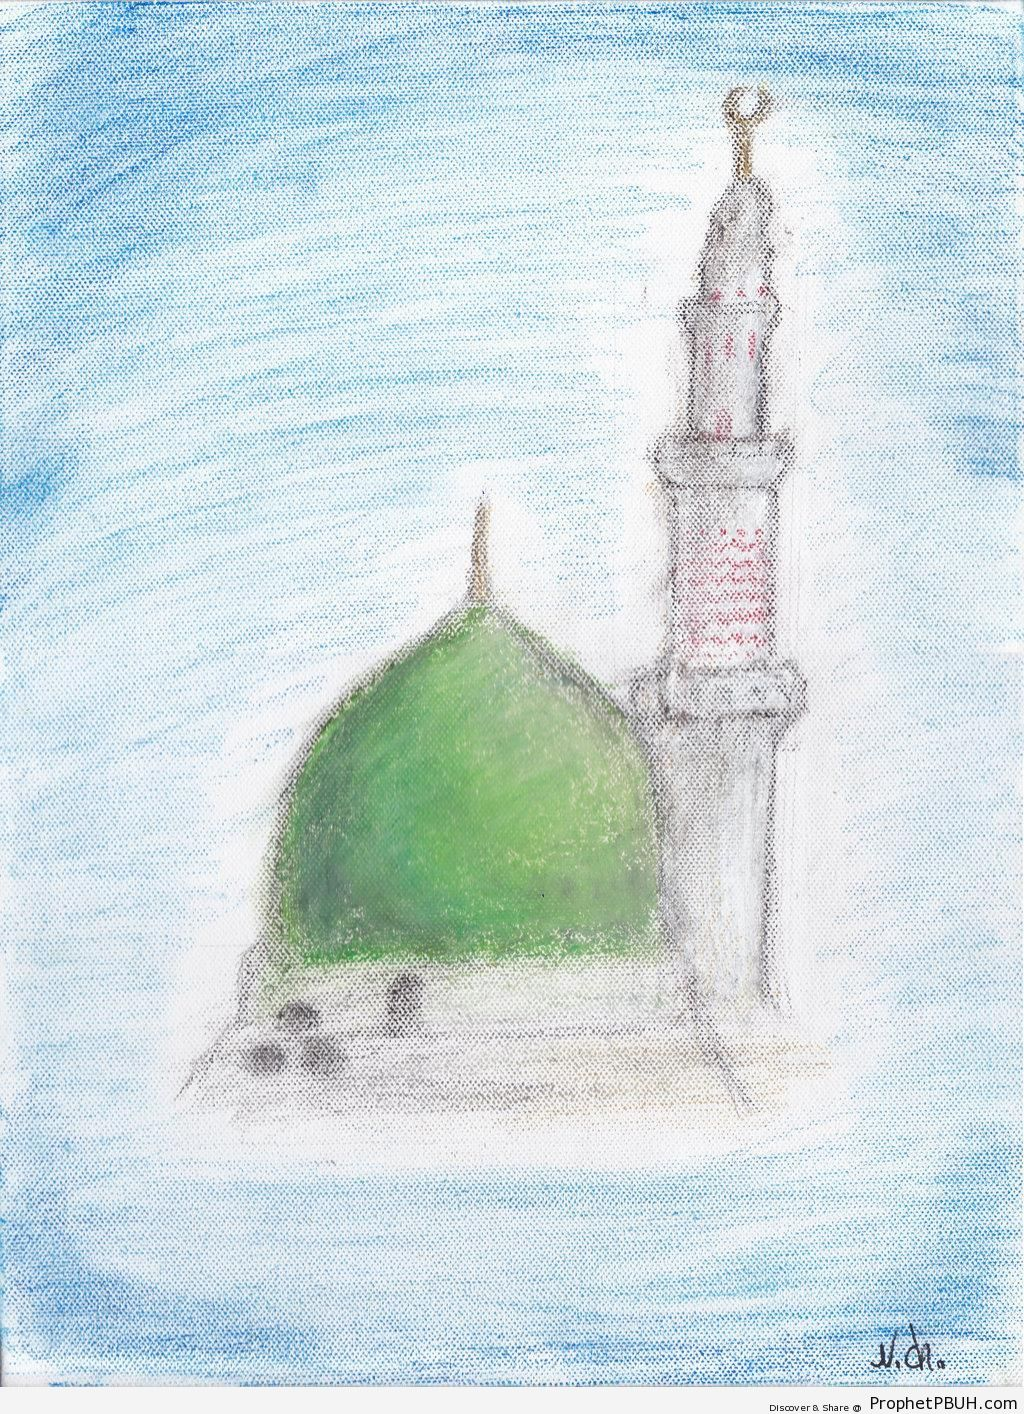 Pastel Drawing of al-Masjid an-Nabawi - Al-Masjid an-Nabawi (The Prophets Mosque) in Madinah, Saudi Arabia -Picture